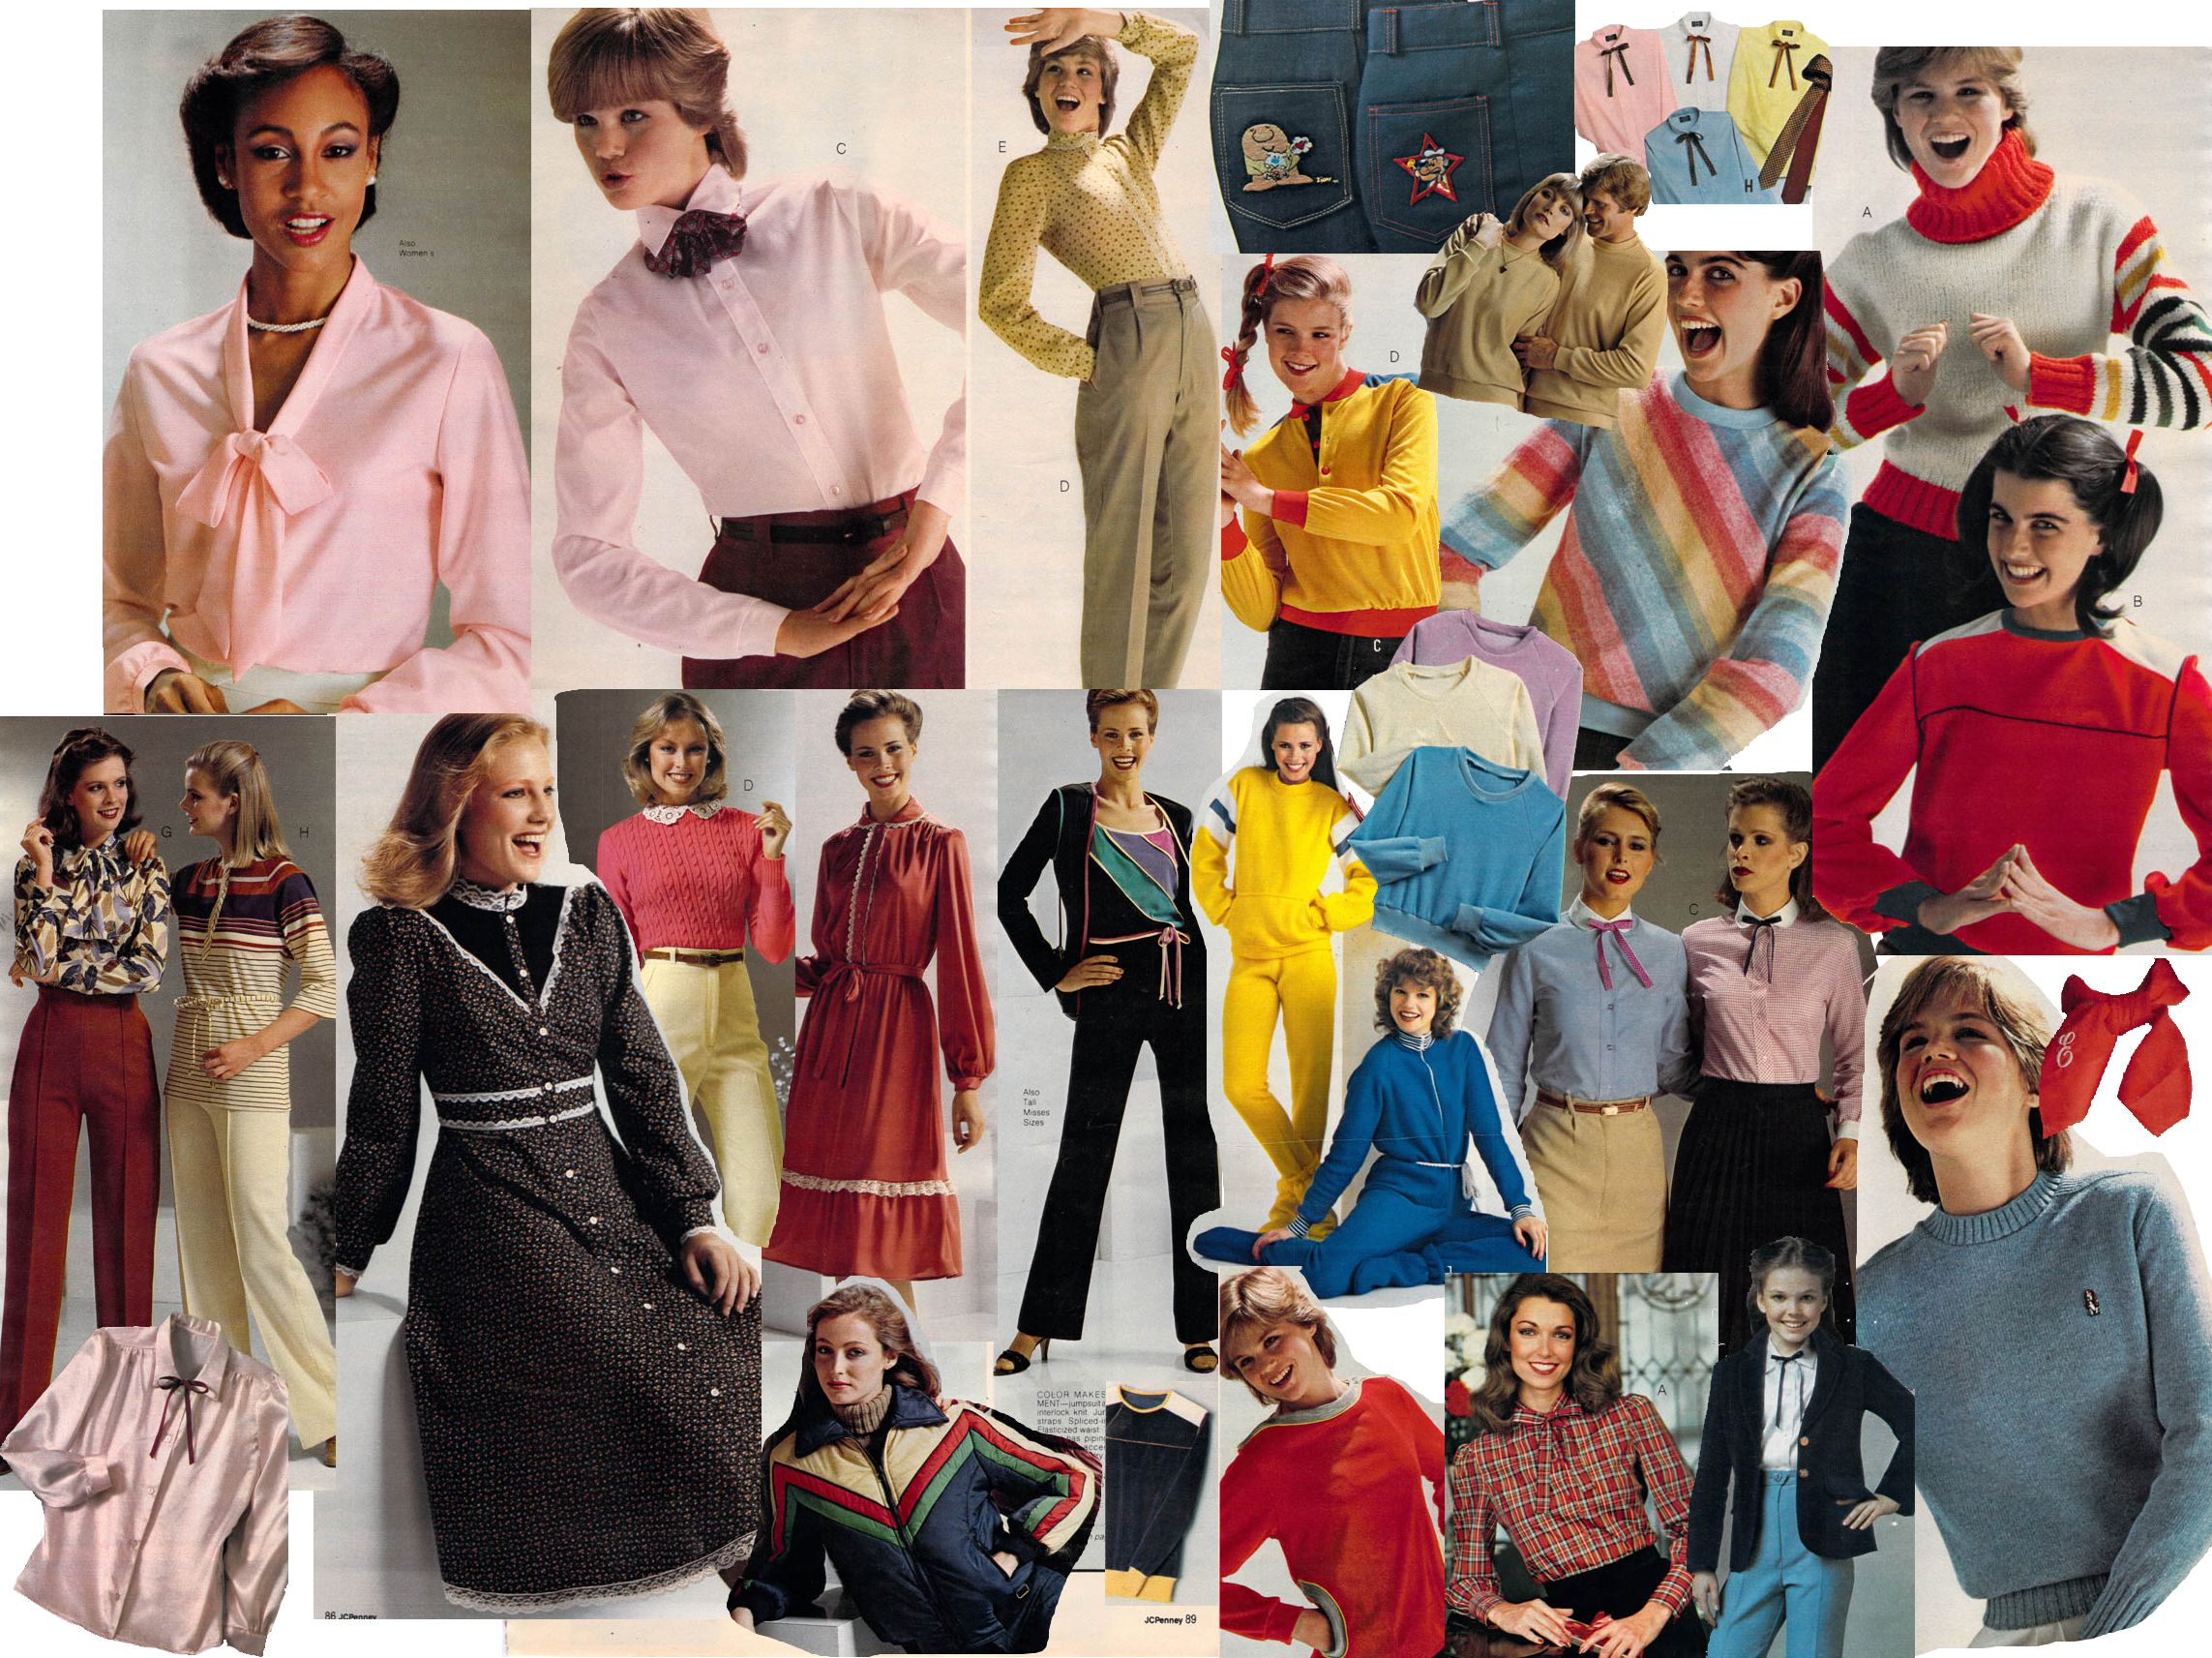 55 best 80' looks images on Pinterest | 1980s, 80s fashion and 80 s